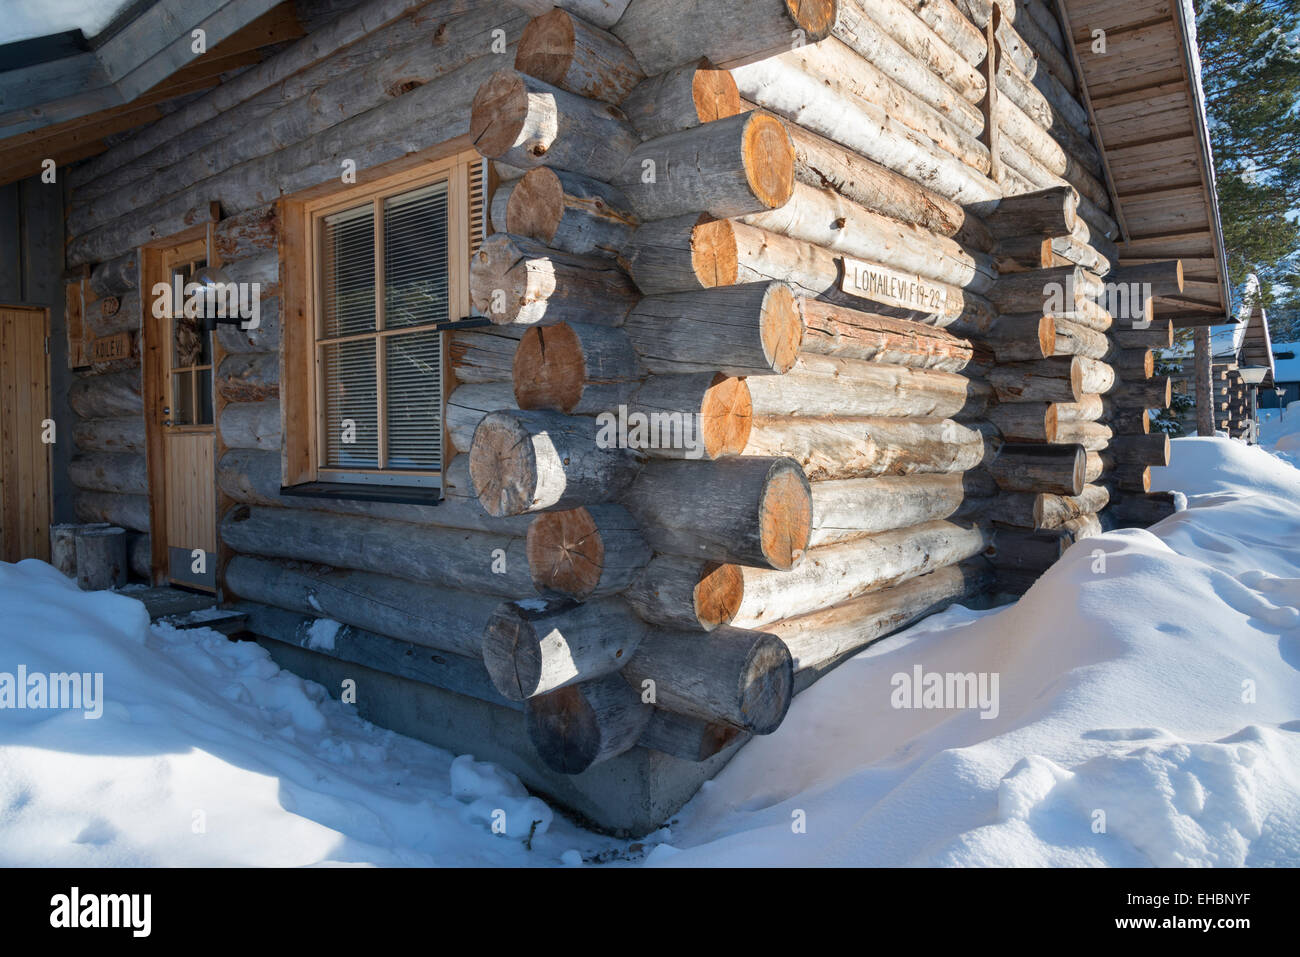 Detail Of A Log Cabin Building Showing The Corner Joints Of The Logs. A Log